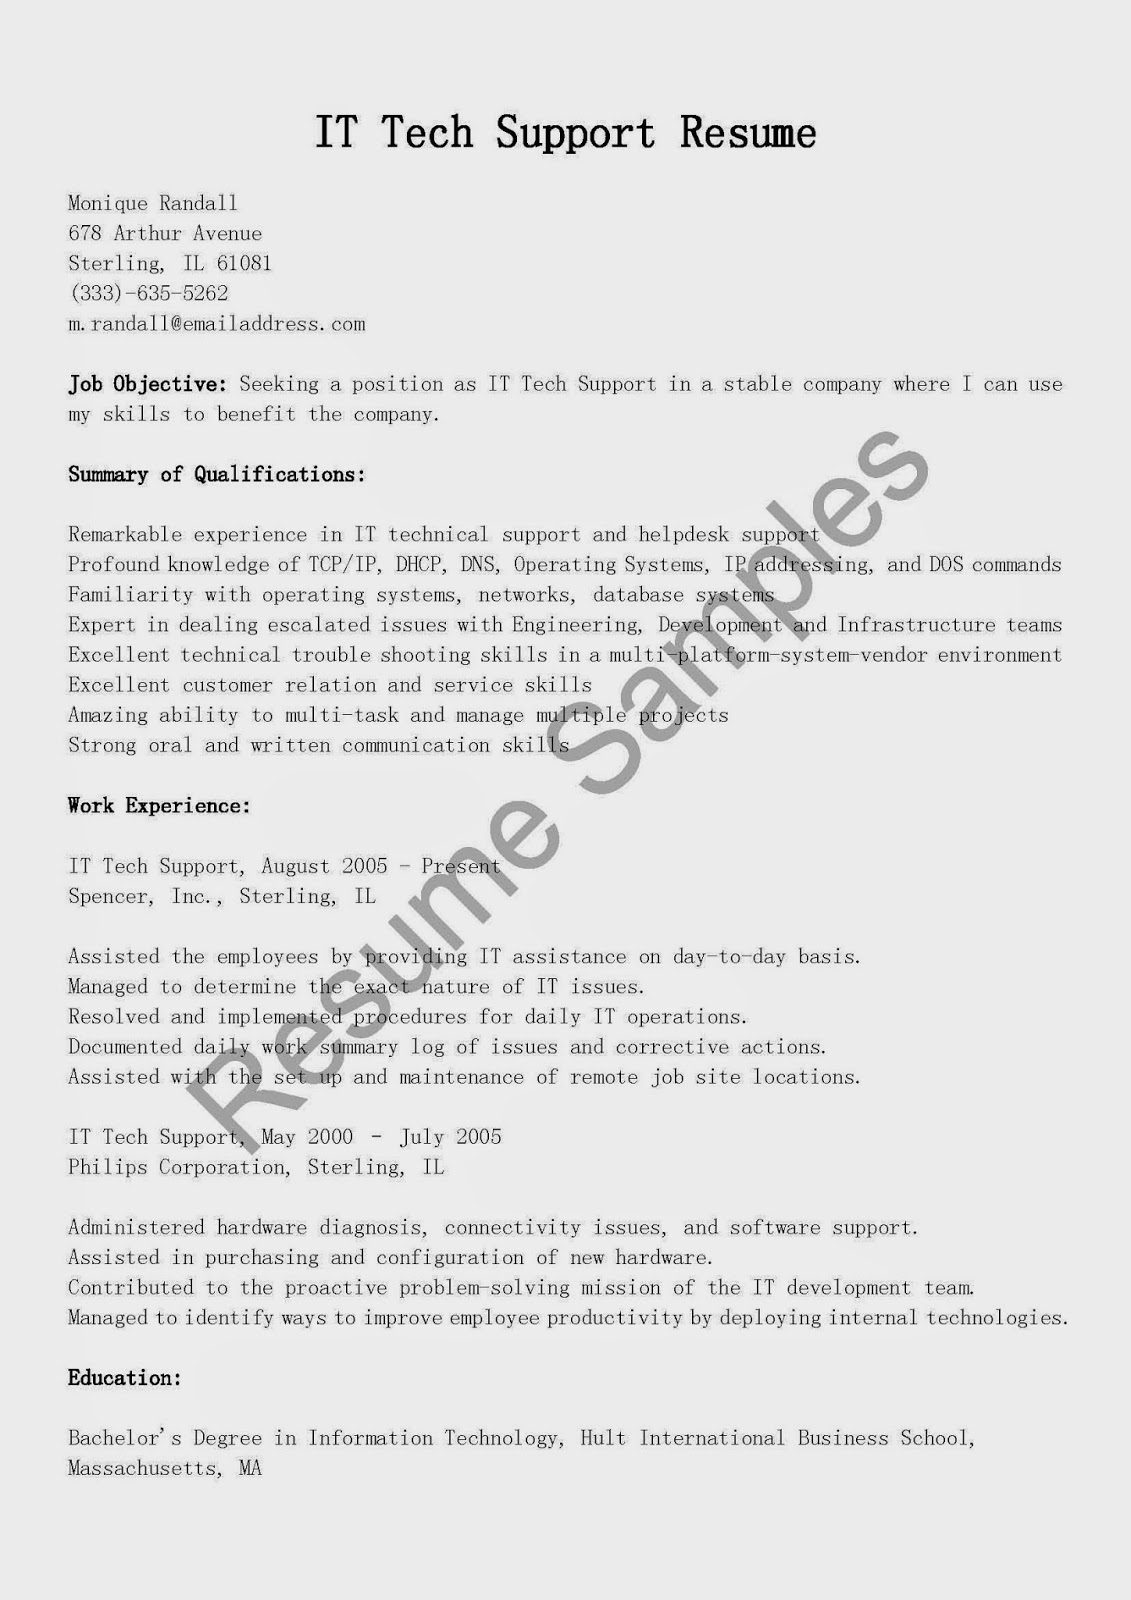 Technical Support Resume Sample Resume Samples It Tech Support Resume Sample